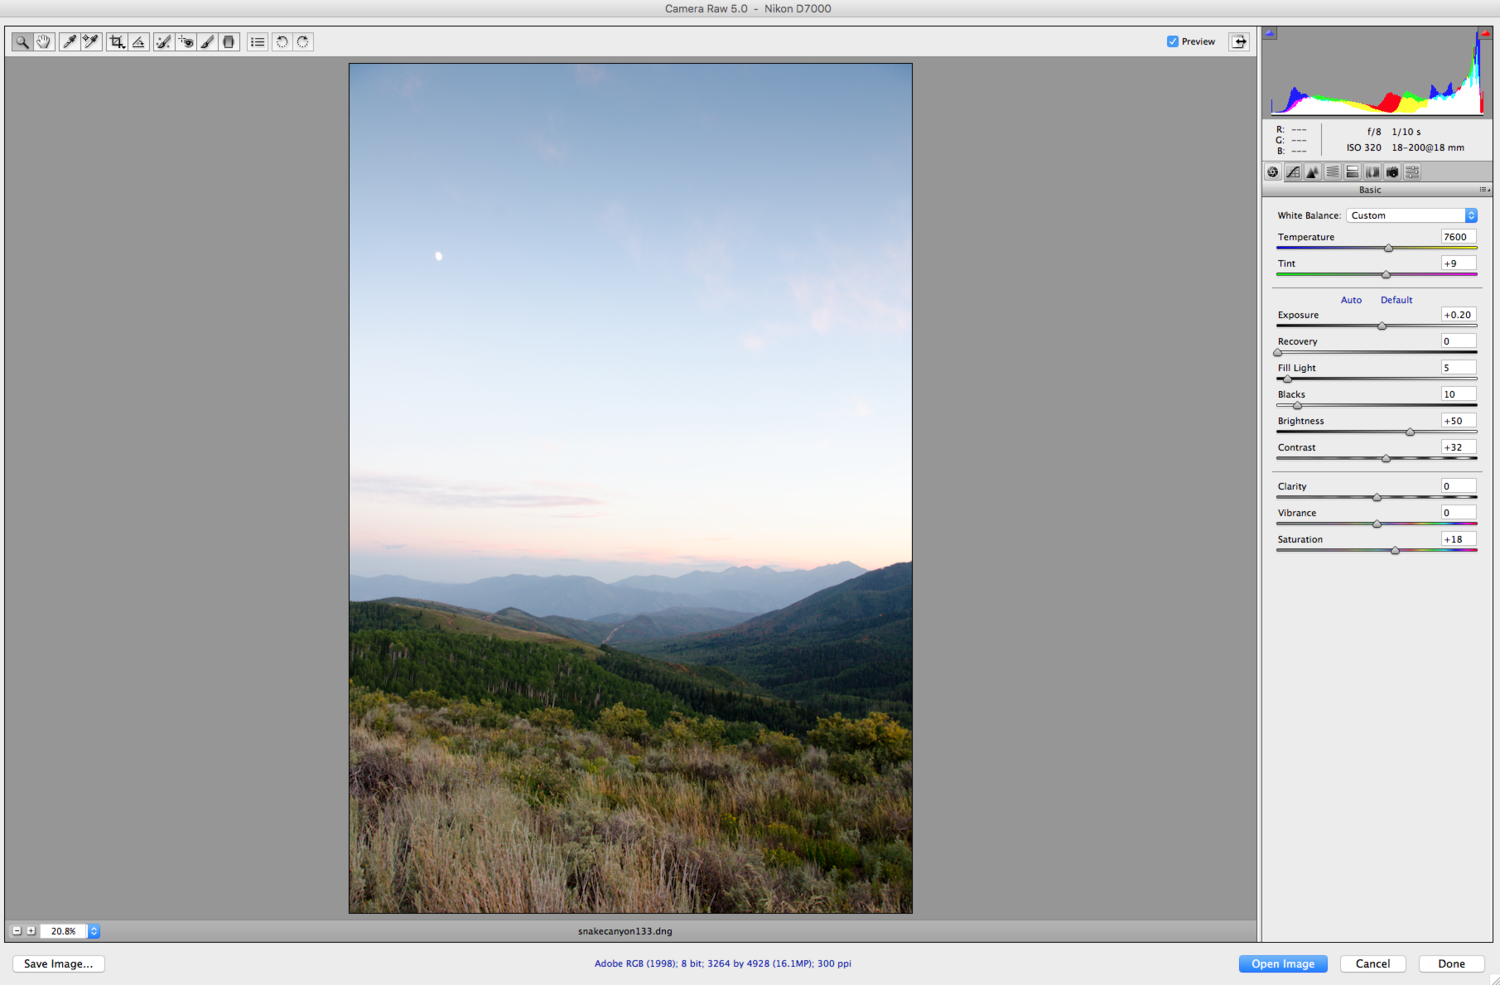 how to convert raw images to jpeg in iphoto